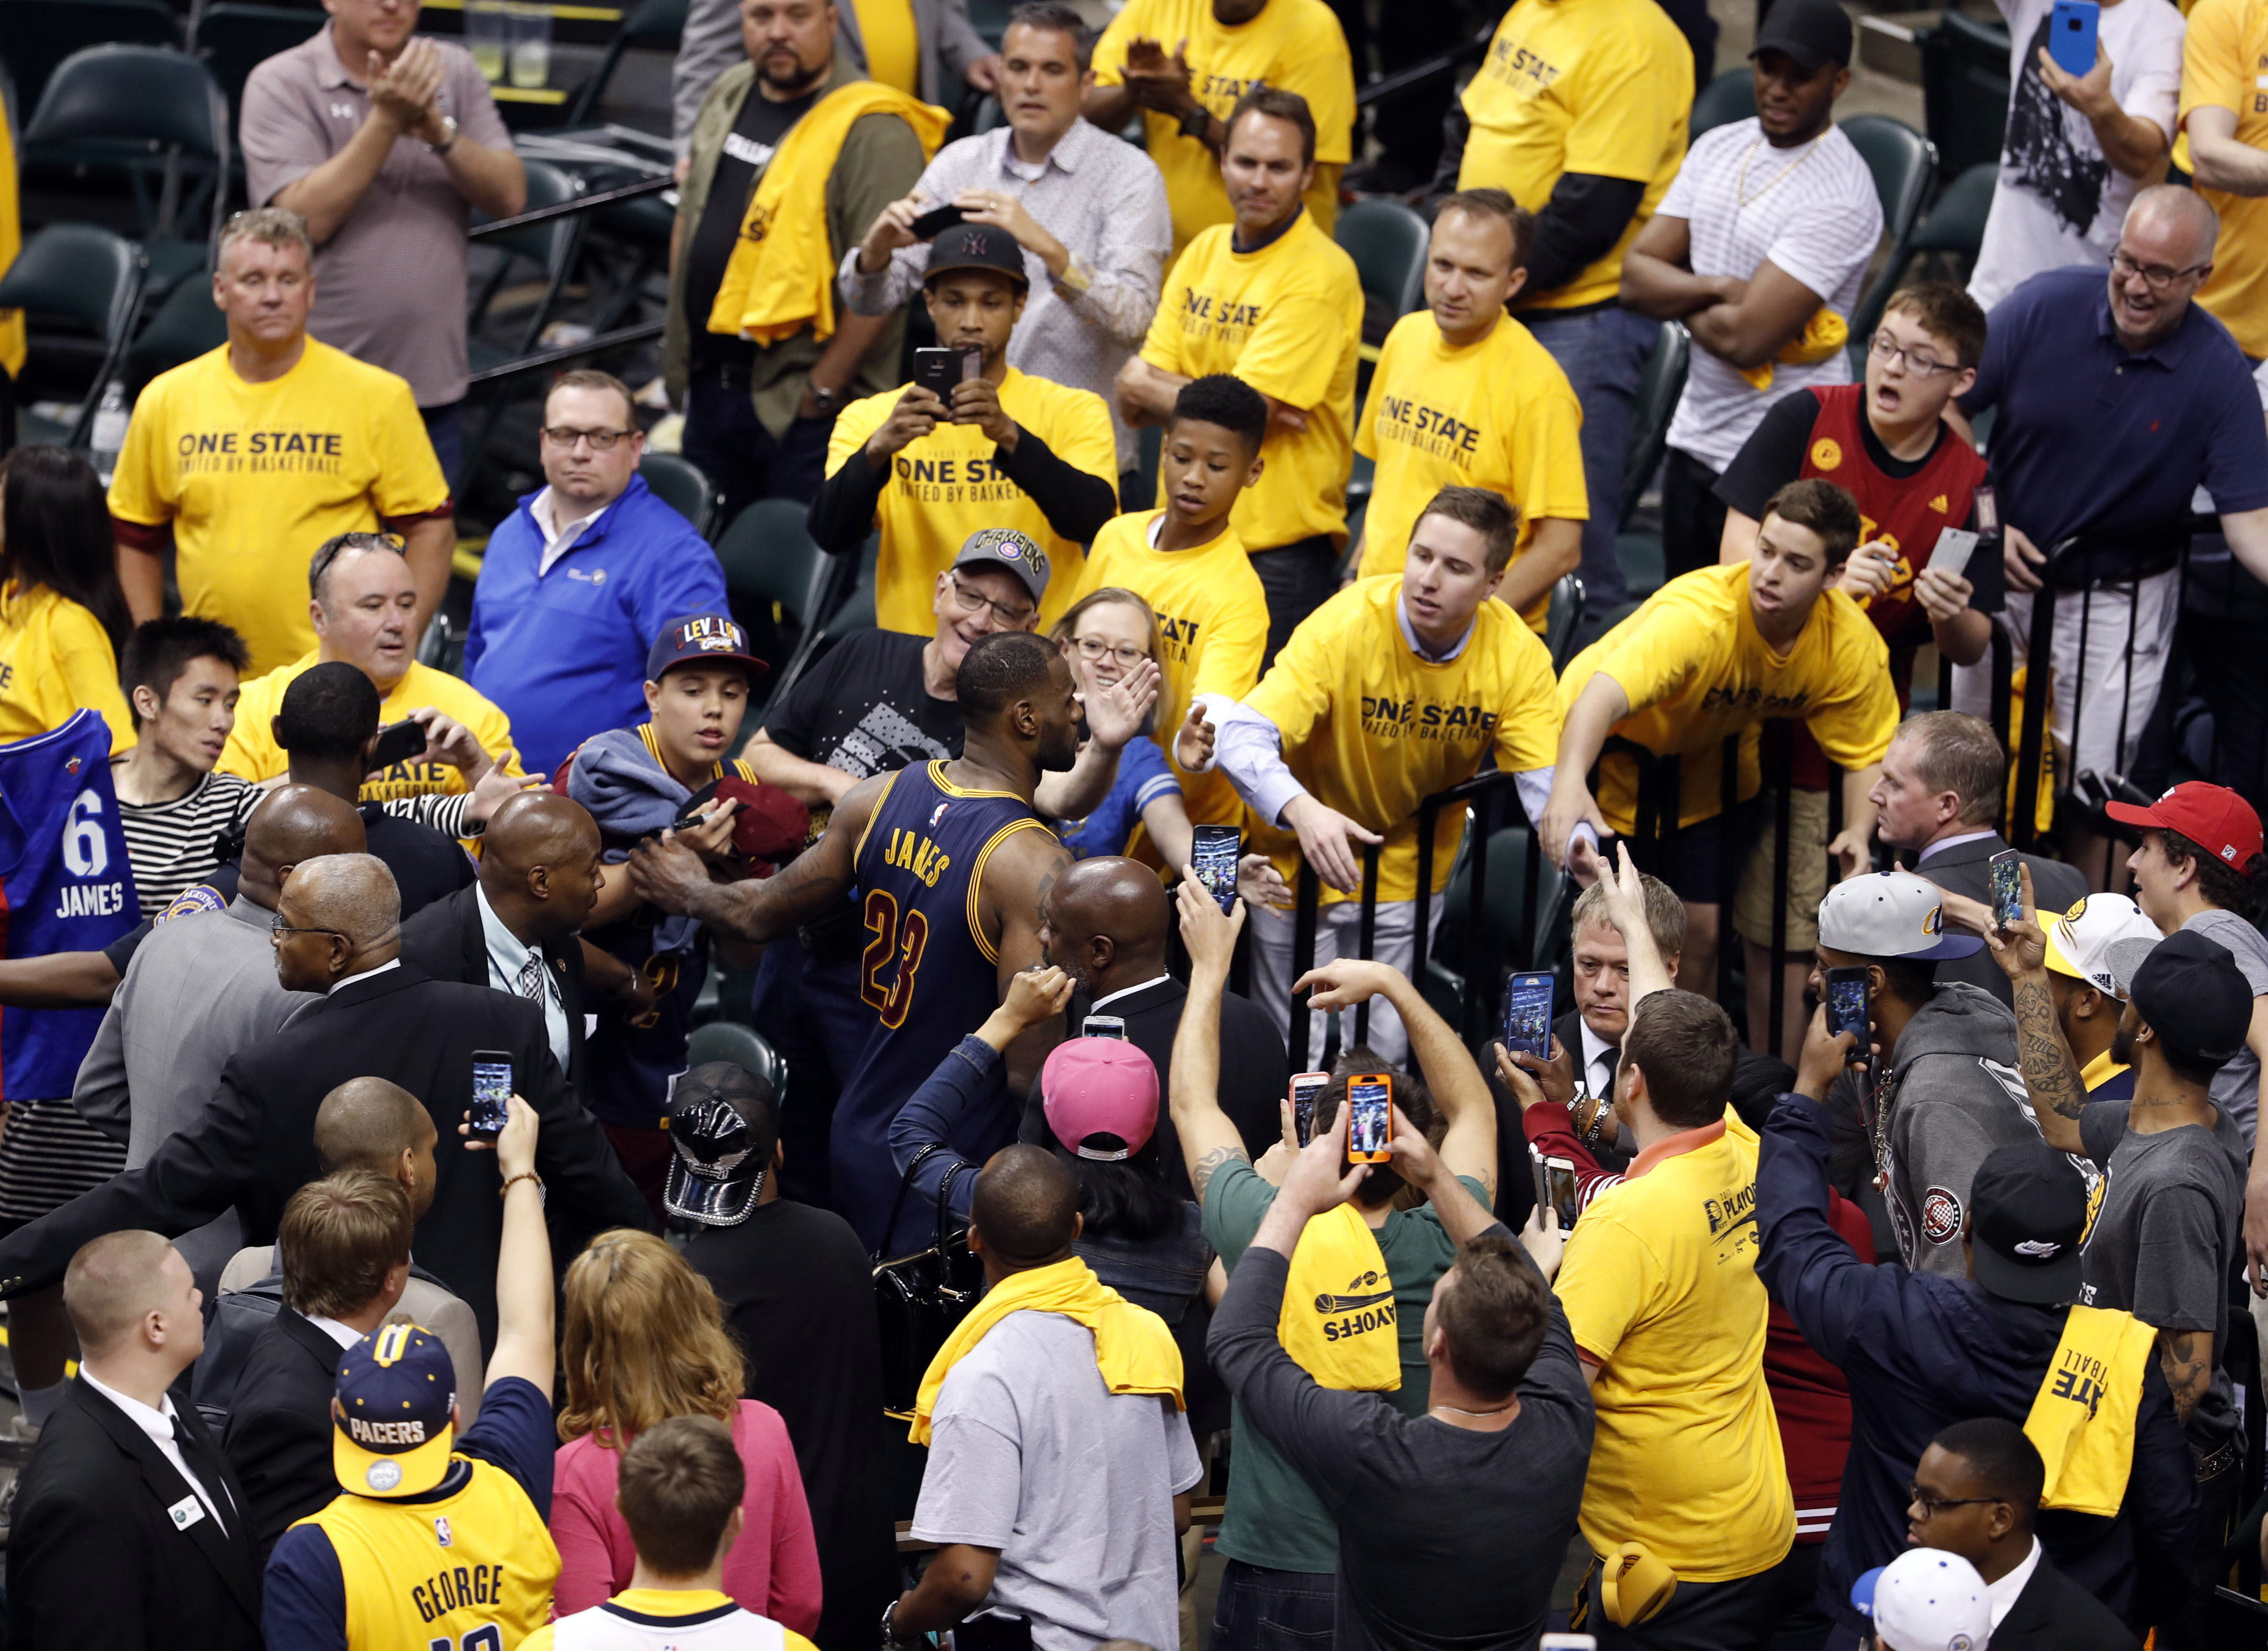 10022776-nba-playoffs-cleveland-cavaliers-at-indiana-pacers